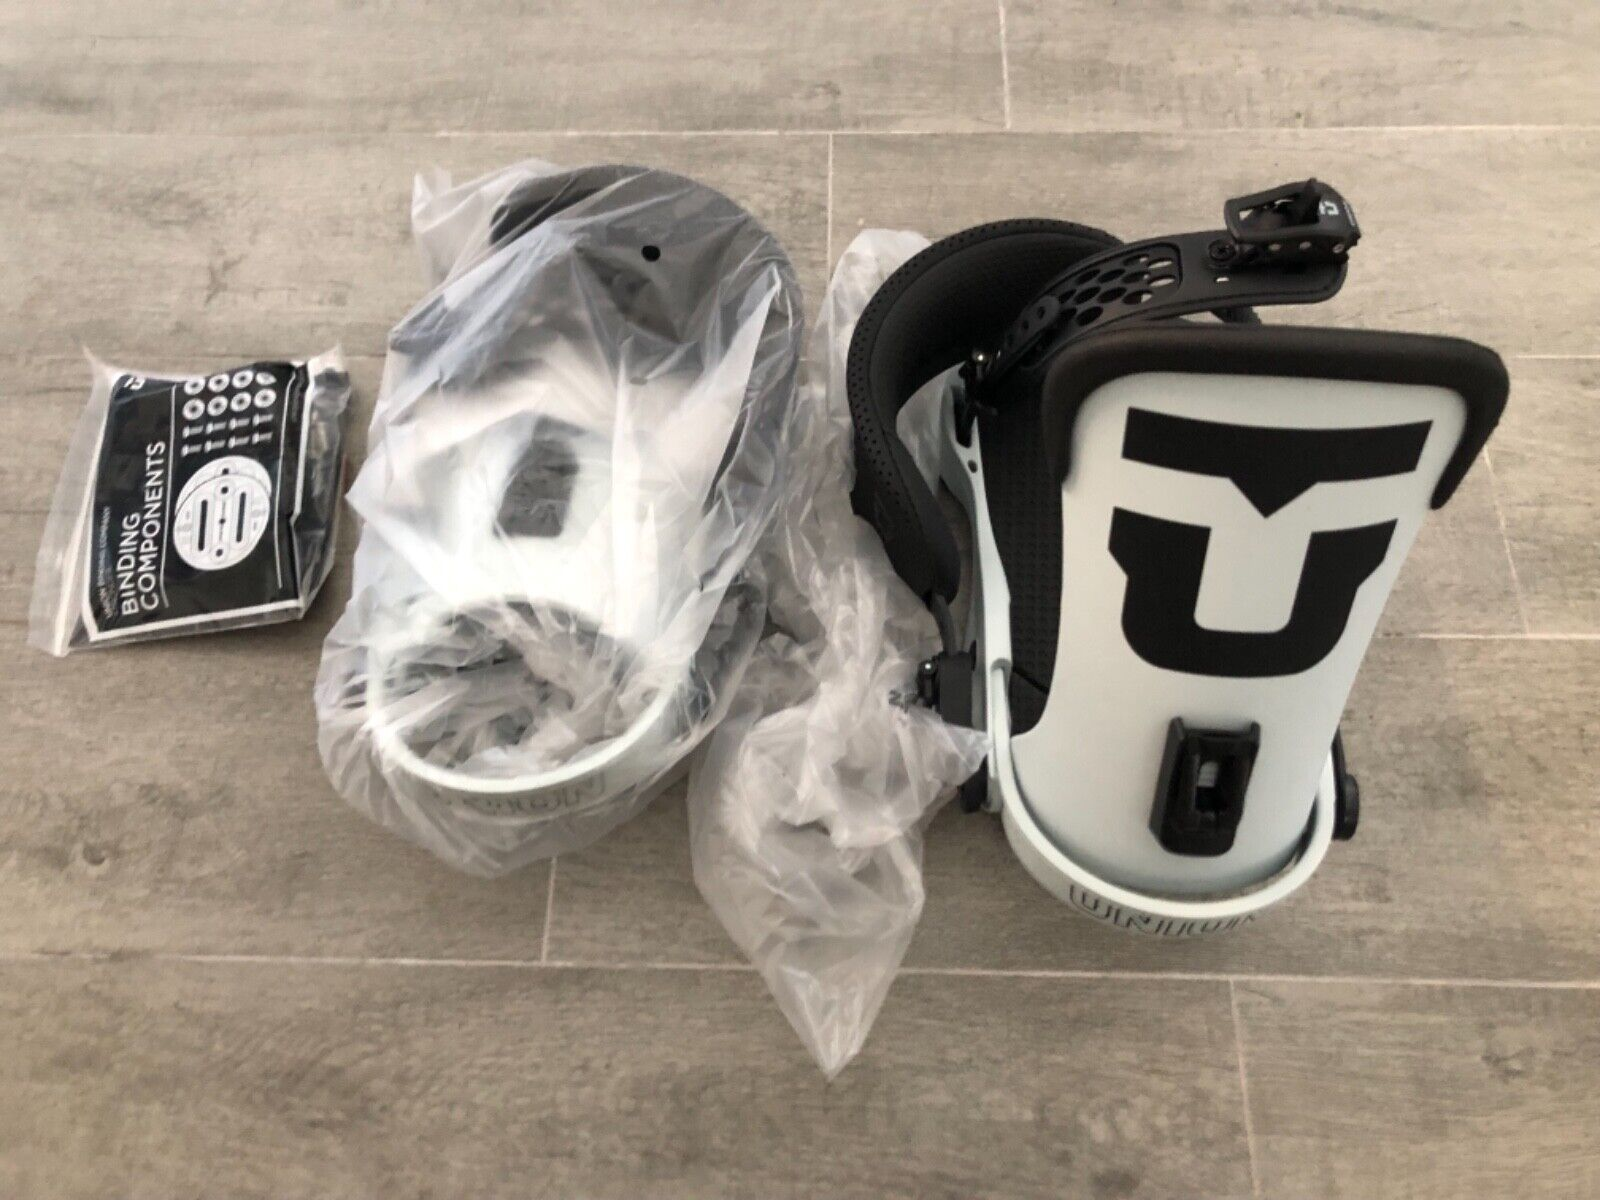 2019 2020 Union TEAM Force Snowboard Bindings LARGE Rare - Limited Pre-Release